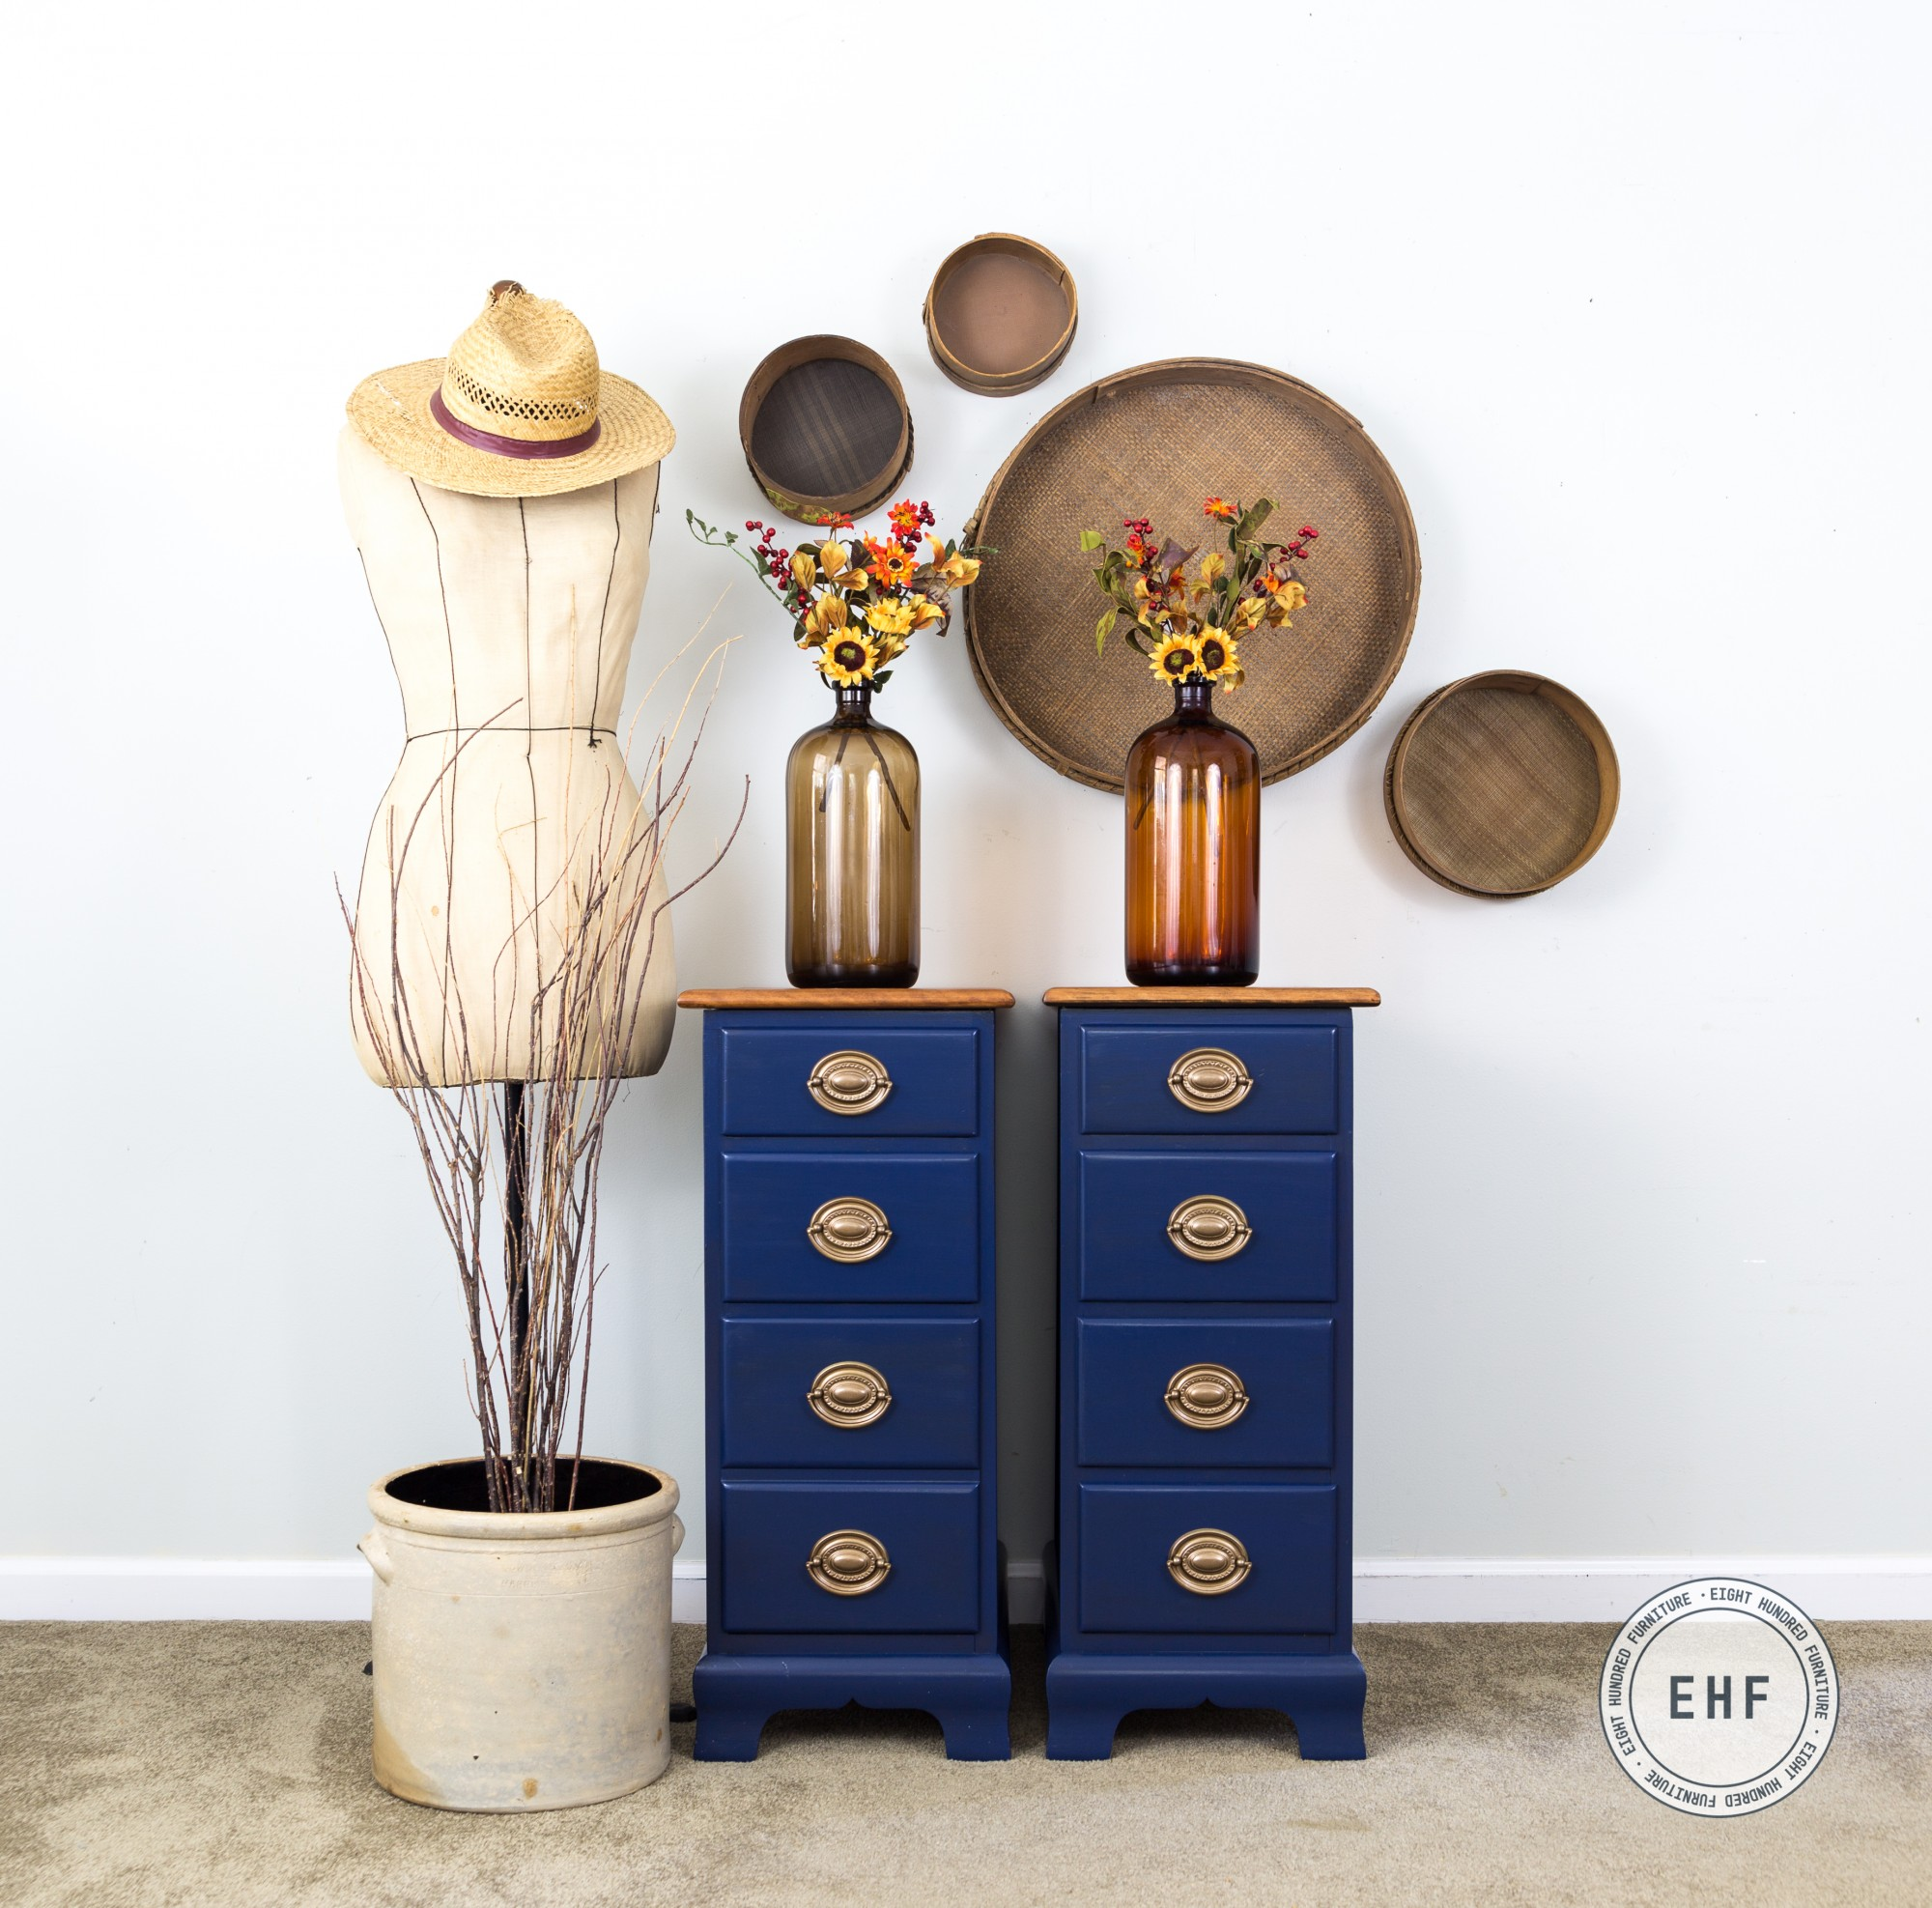 Maple nightstands painted in China Blue Milk Paint by General Finishes by Eight Hundred Furniture